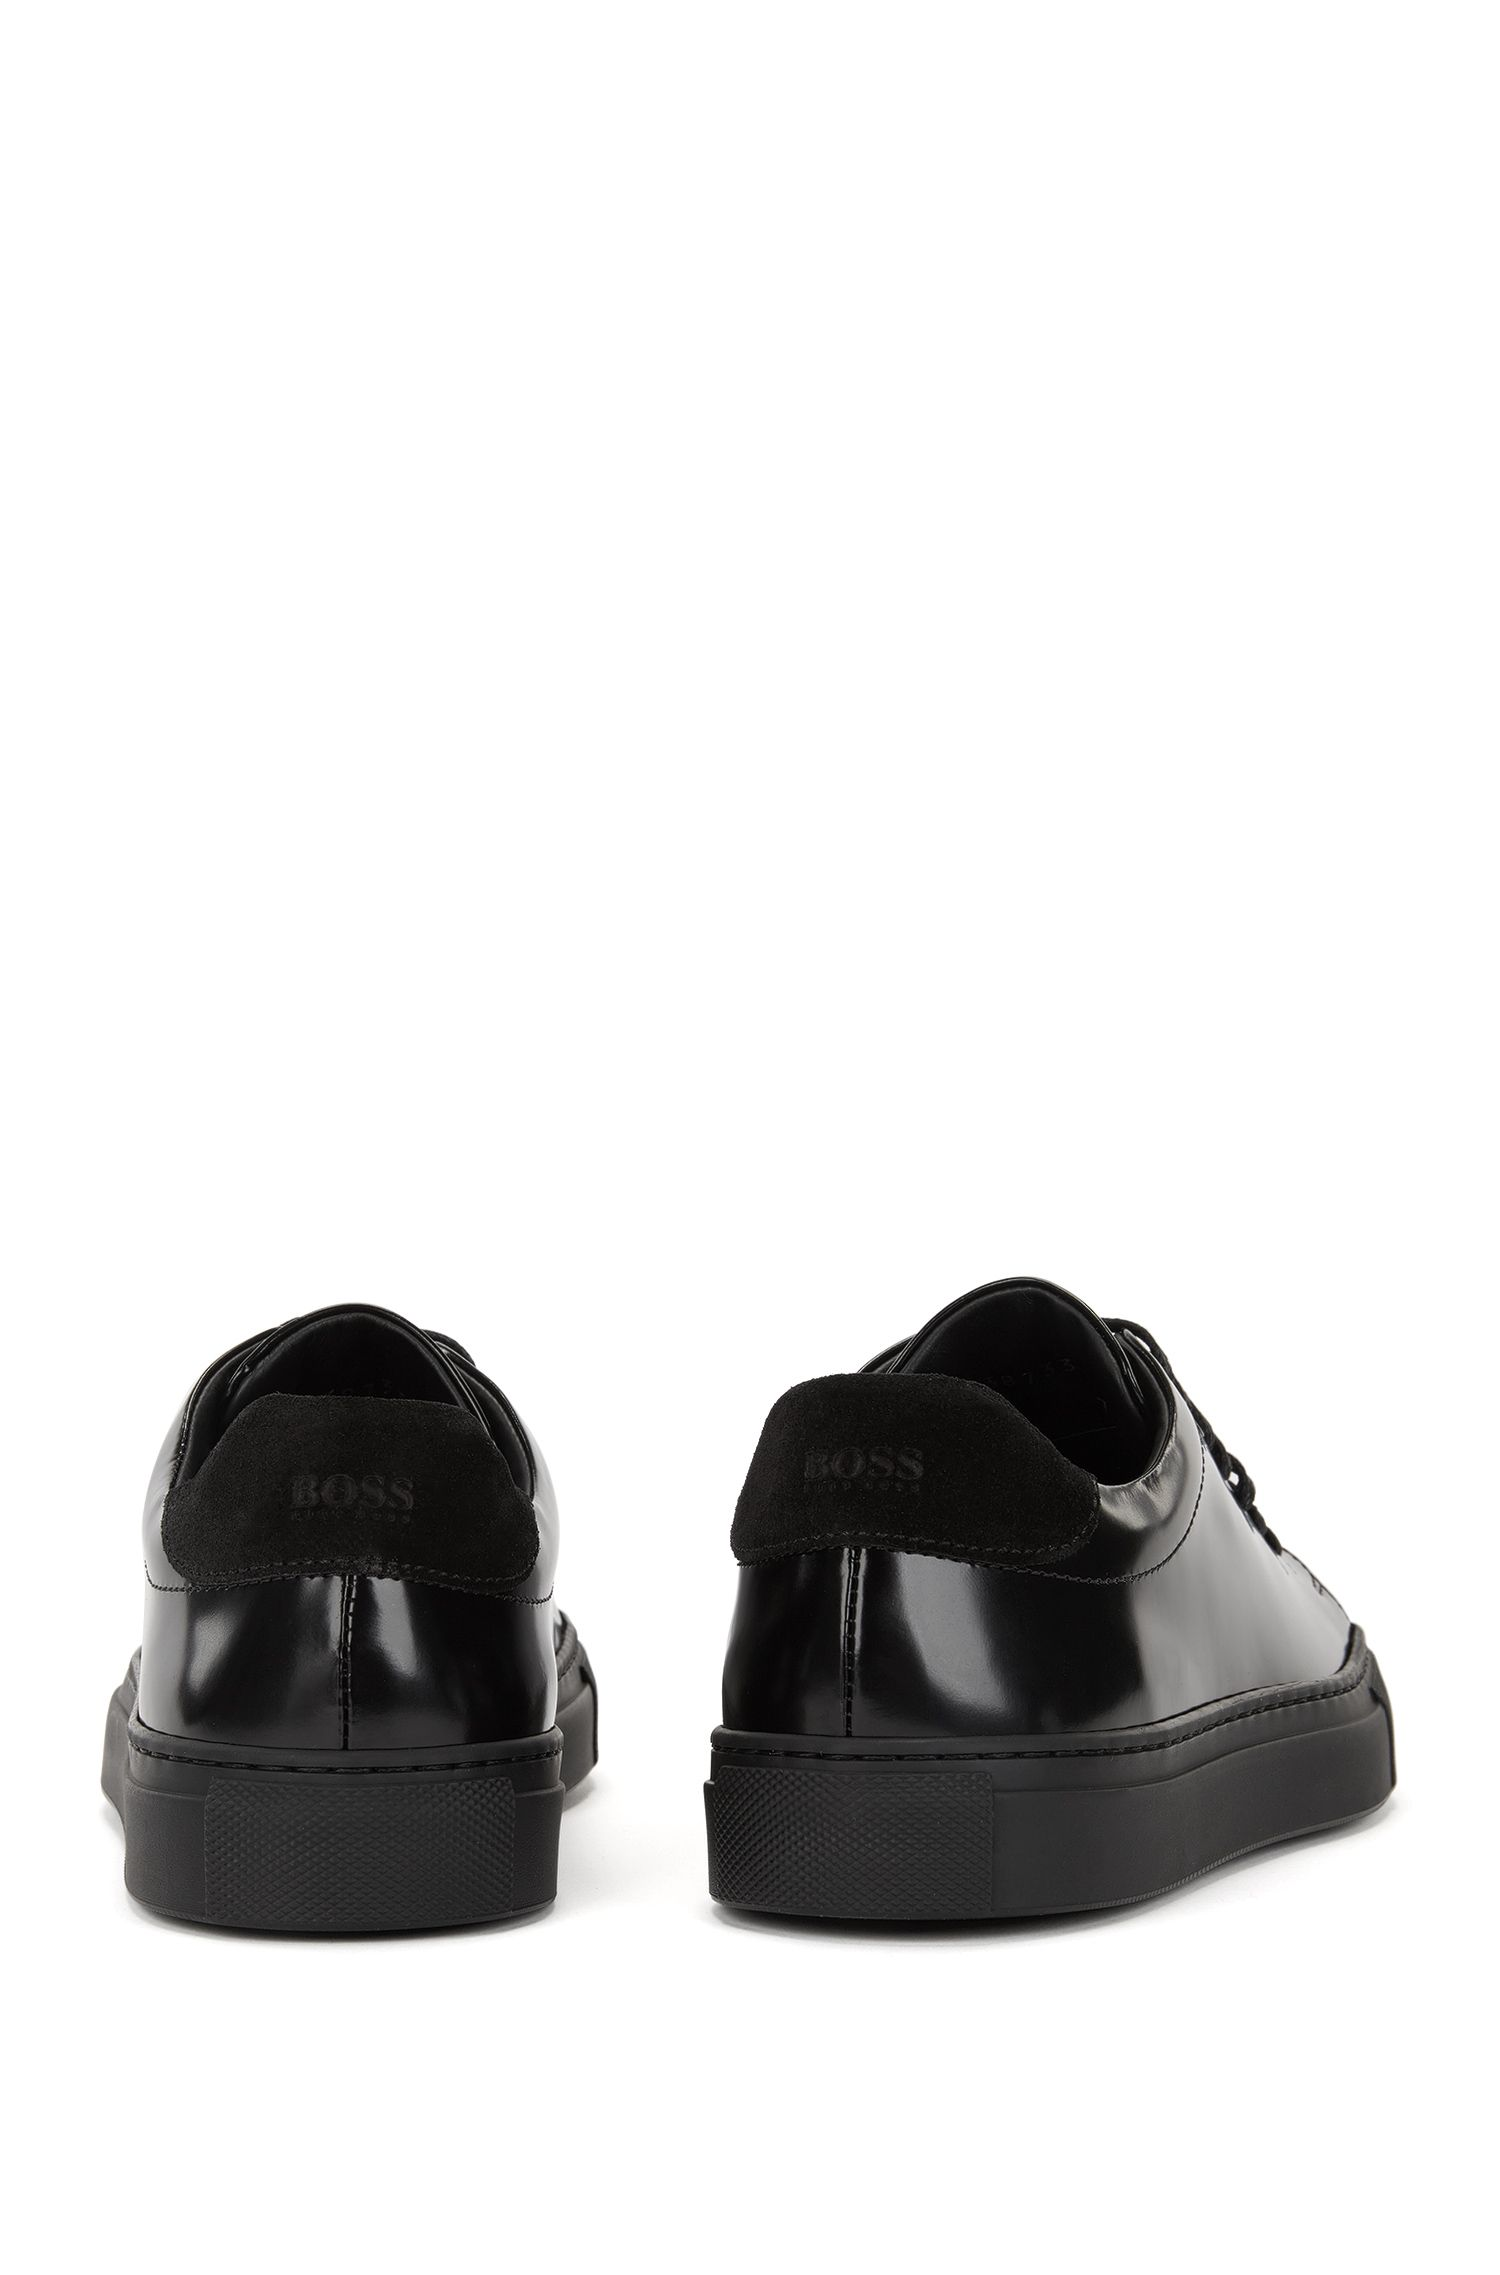 Sneakers low-top in pelle e tela realizzate in Italia